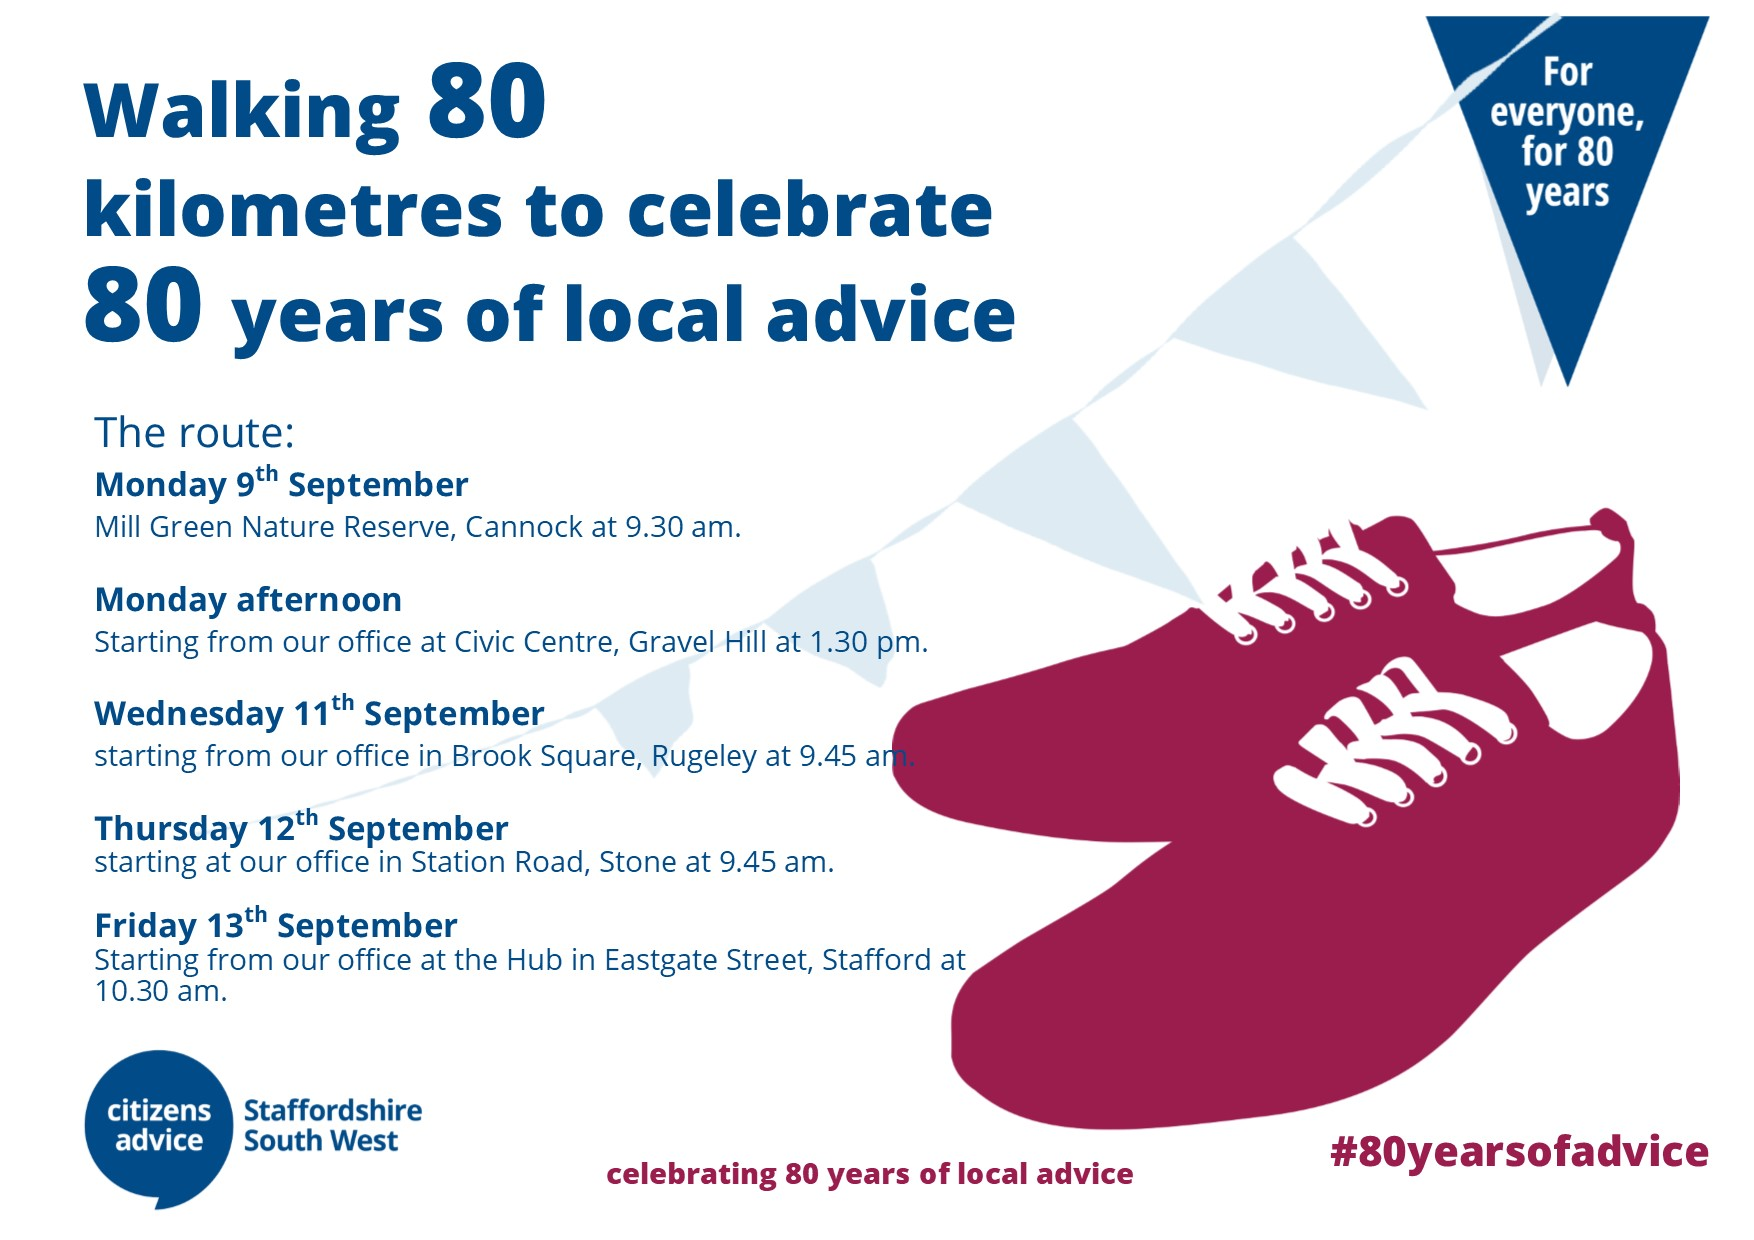 Walking 80k to celebrate 80 years of local advice